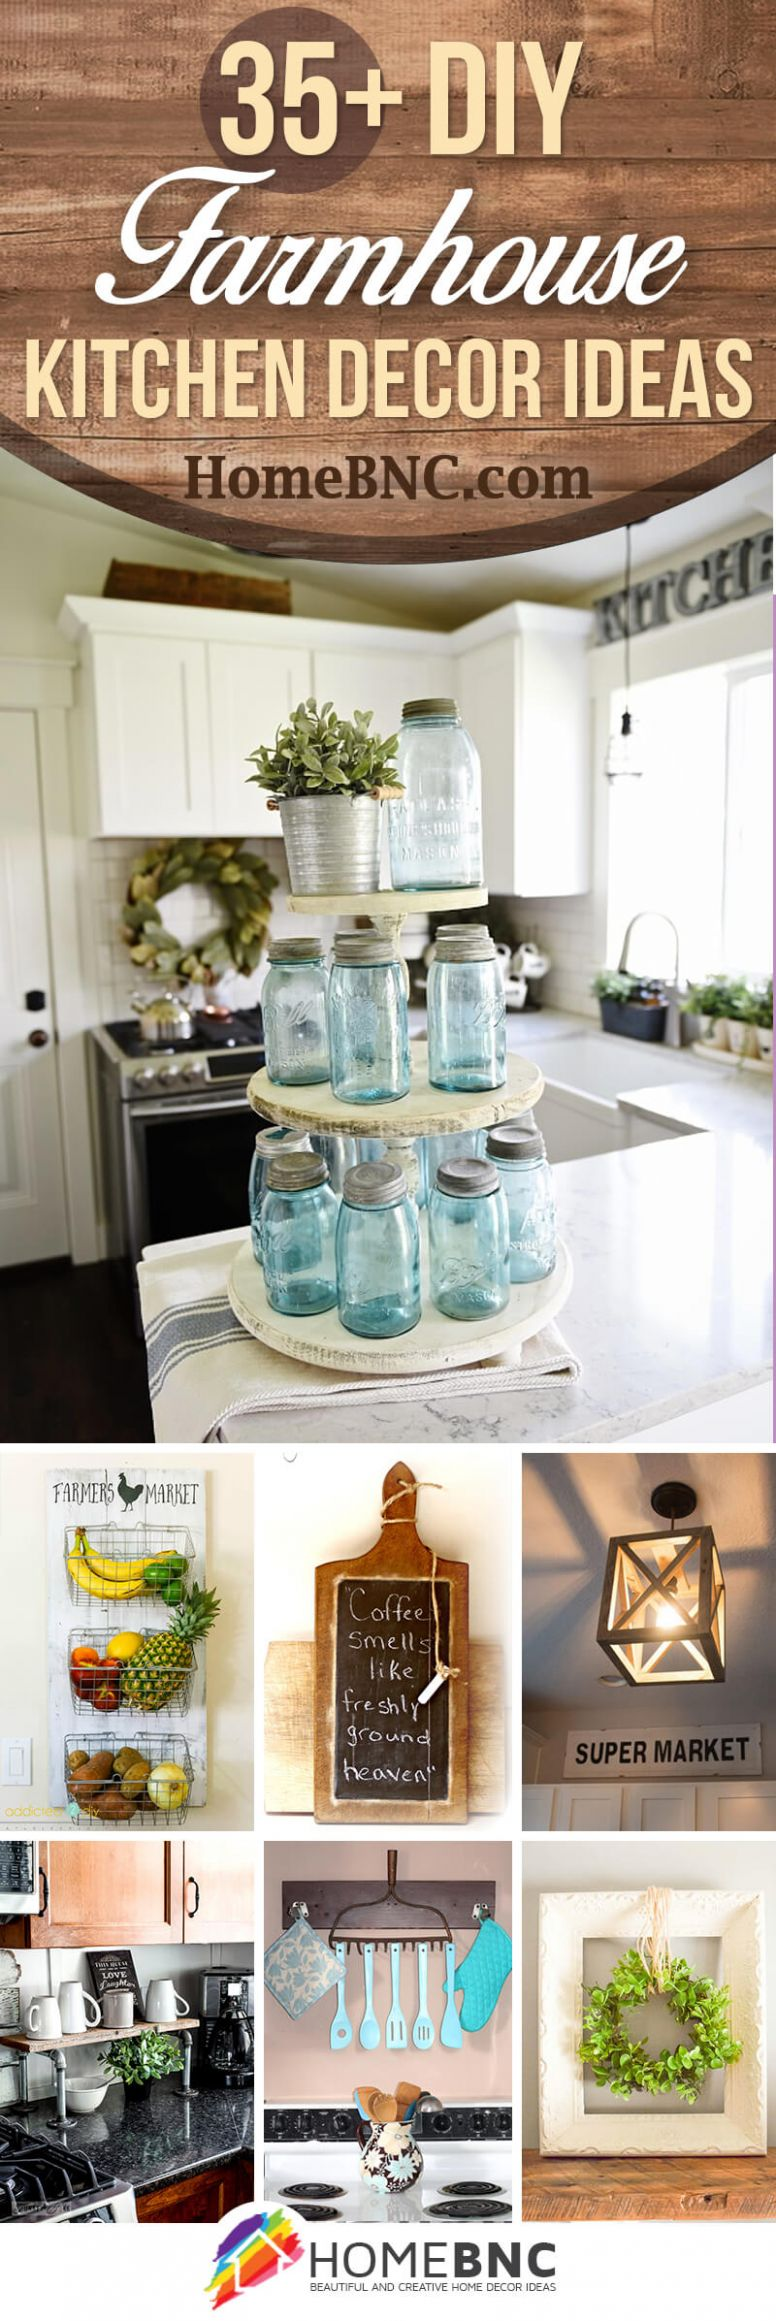 11+ Best DIY Farmhouse Kitchen Decor Projects and Ideas for 11 - kitchen ideas diy